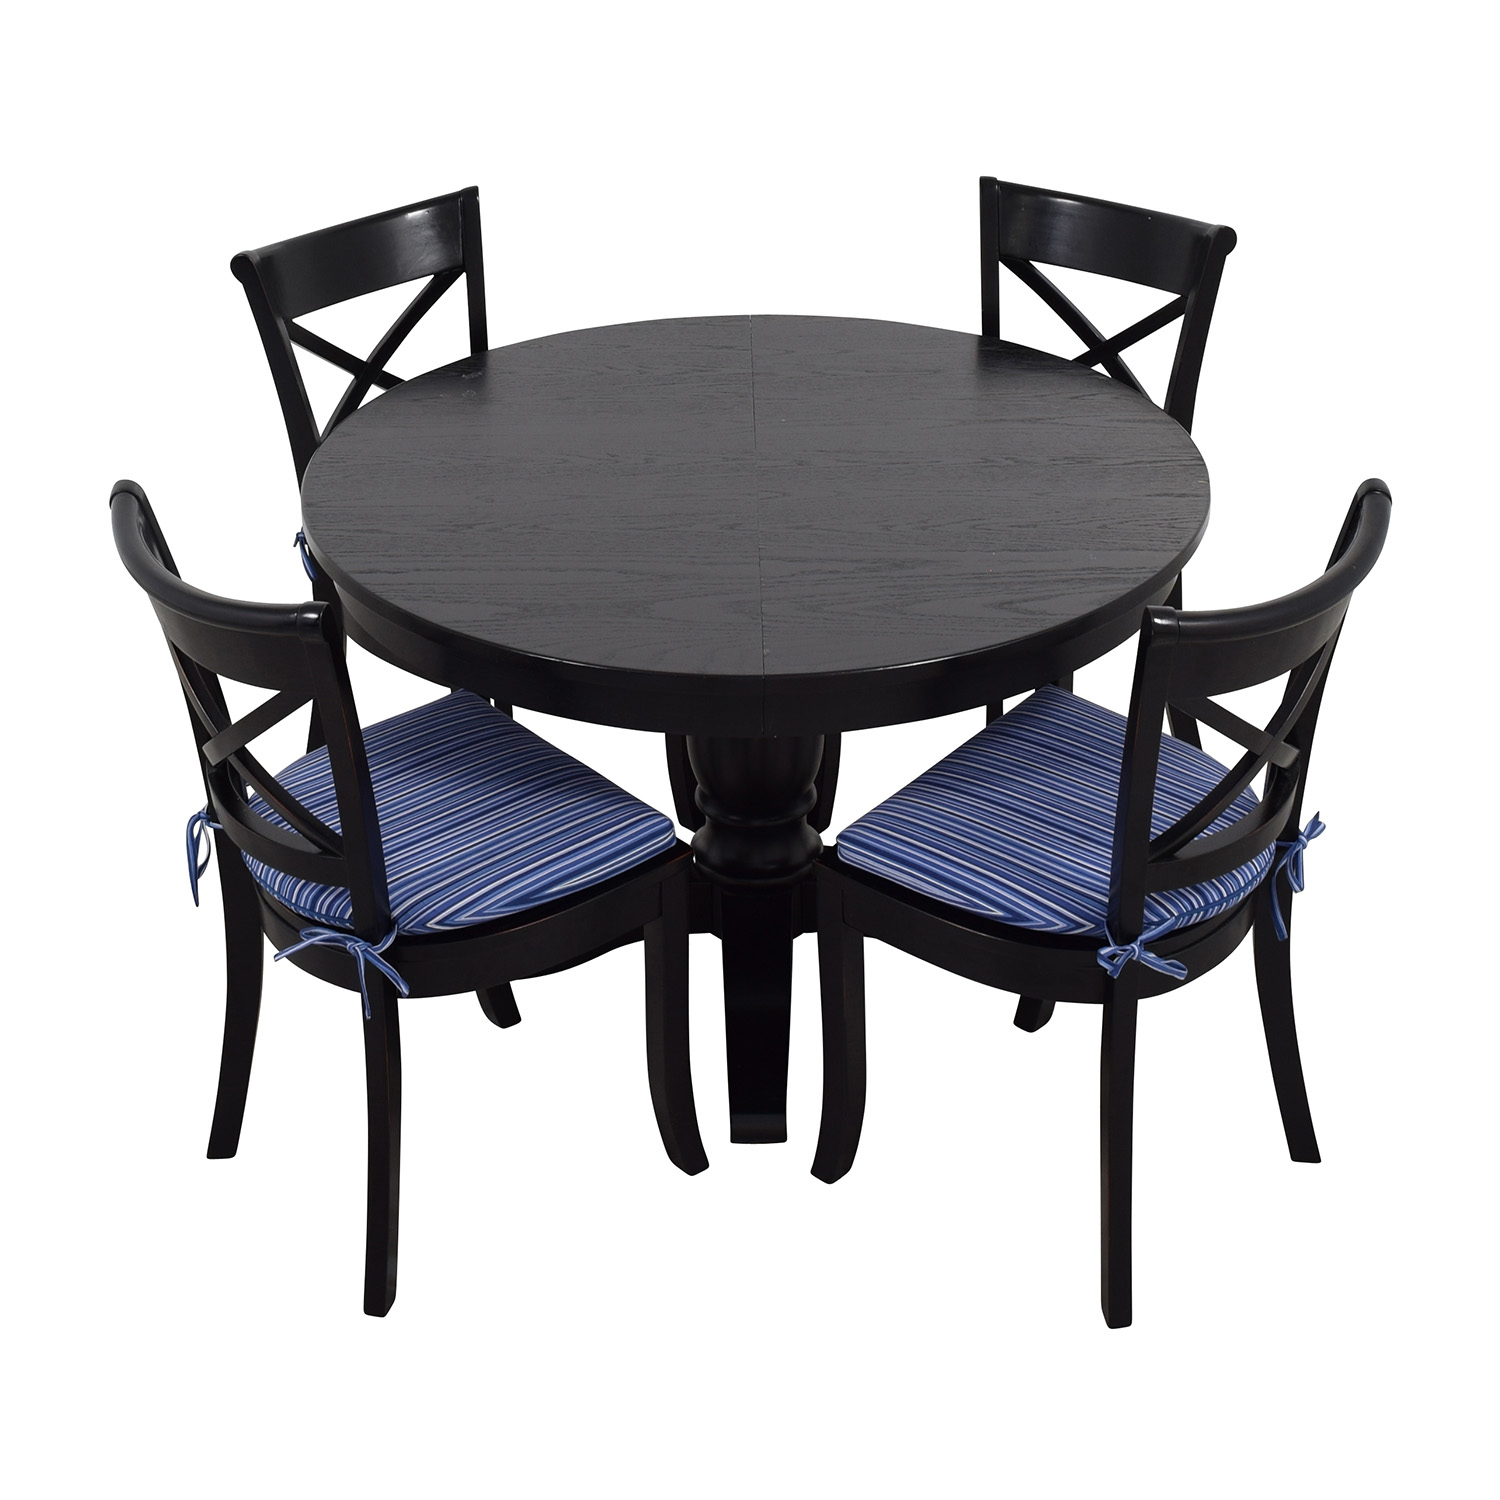 Used Restaurant Tables And Chairs Dining Sets Used Dining Sets For Sale